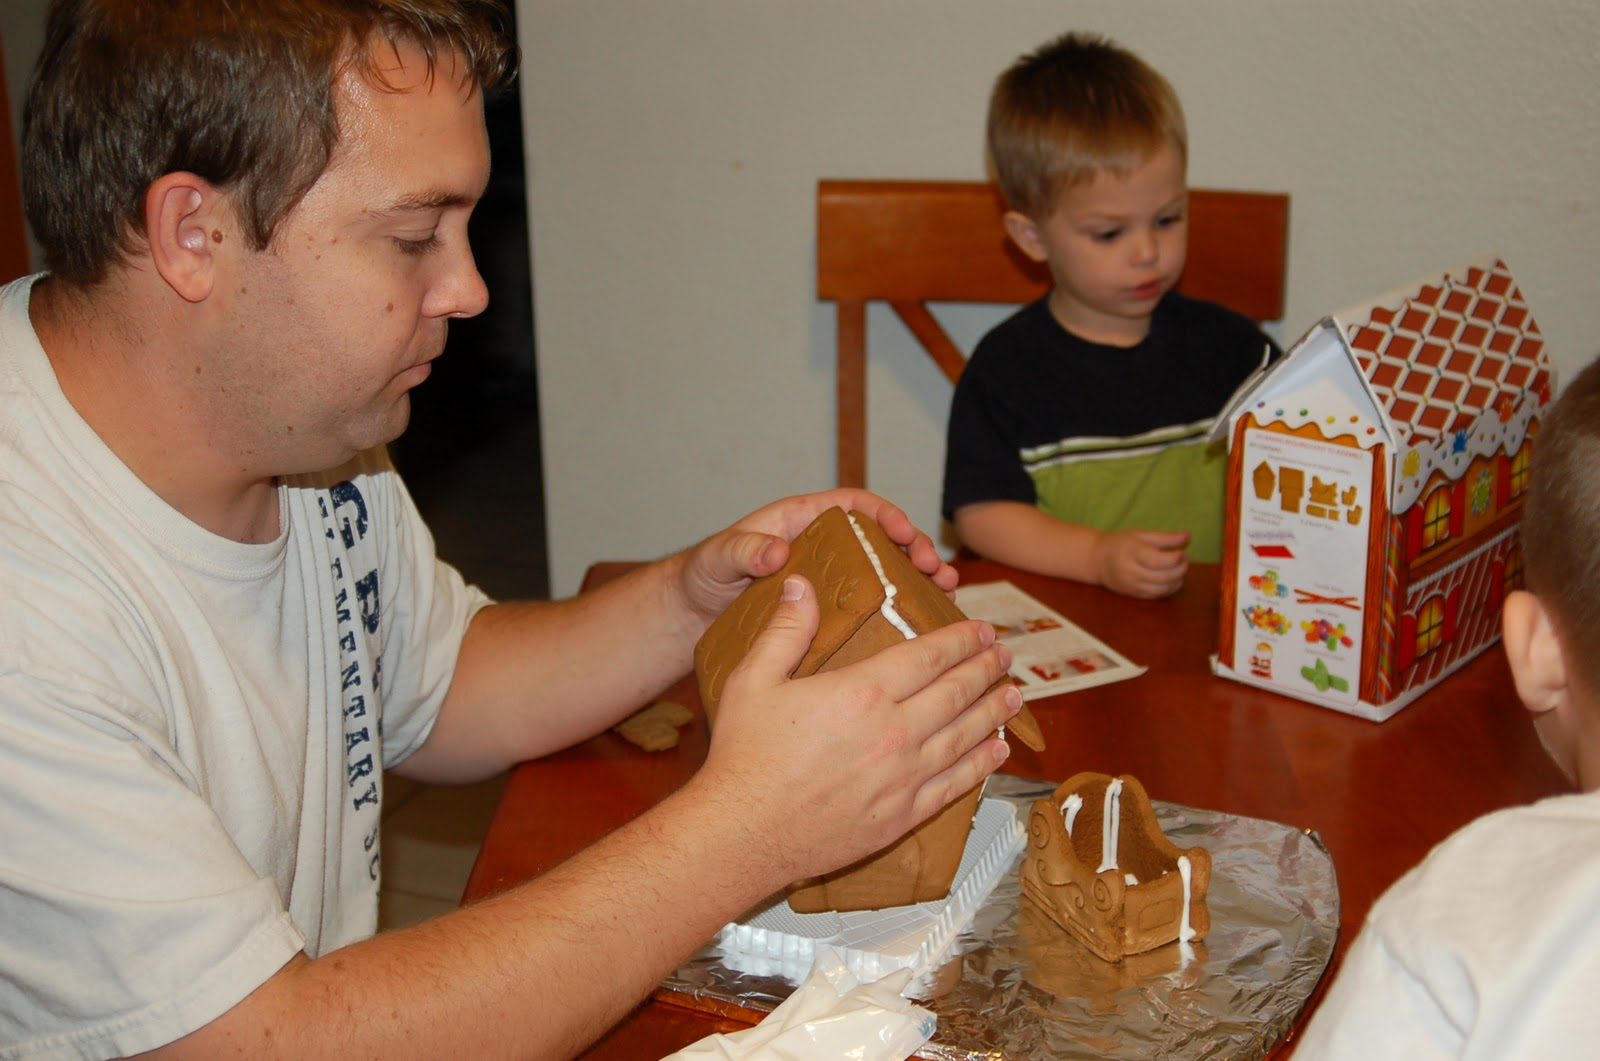 Bj S Cake Decorator Salary : Decorating a Gingerbread House - A Holiday Tradition + USD25 ...